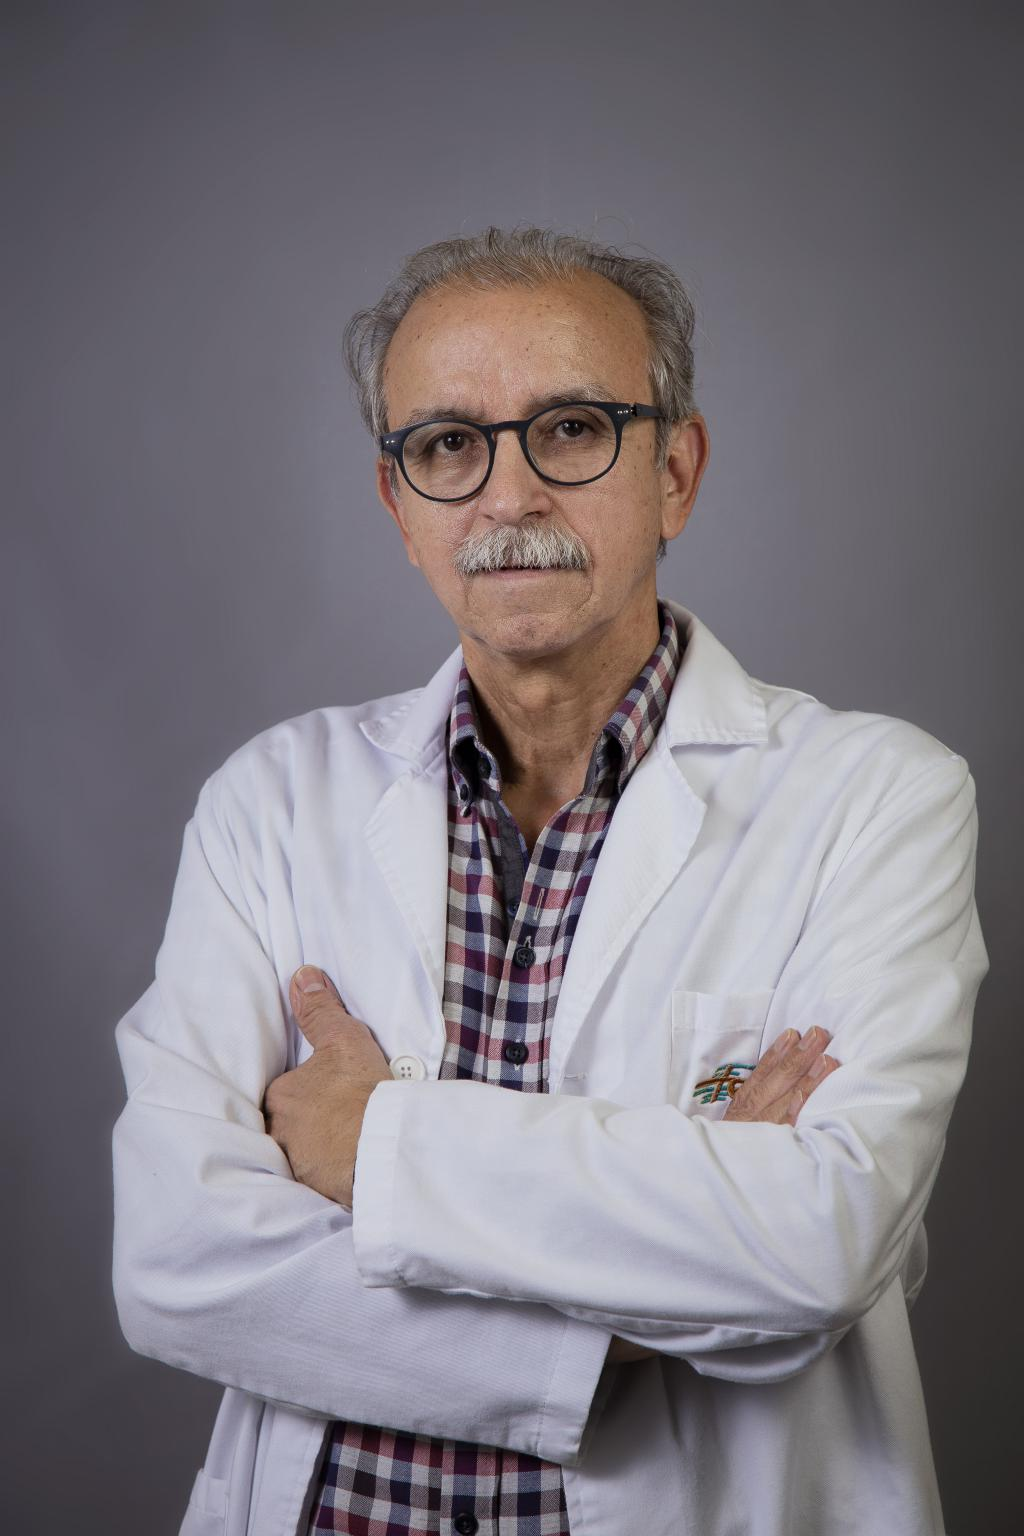 Doctor Manuel Cano